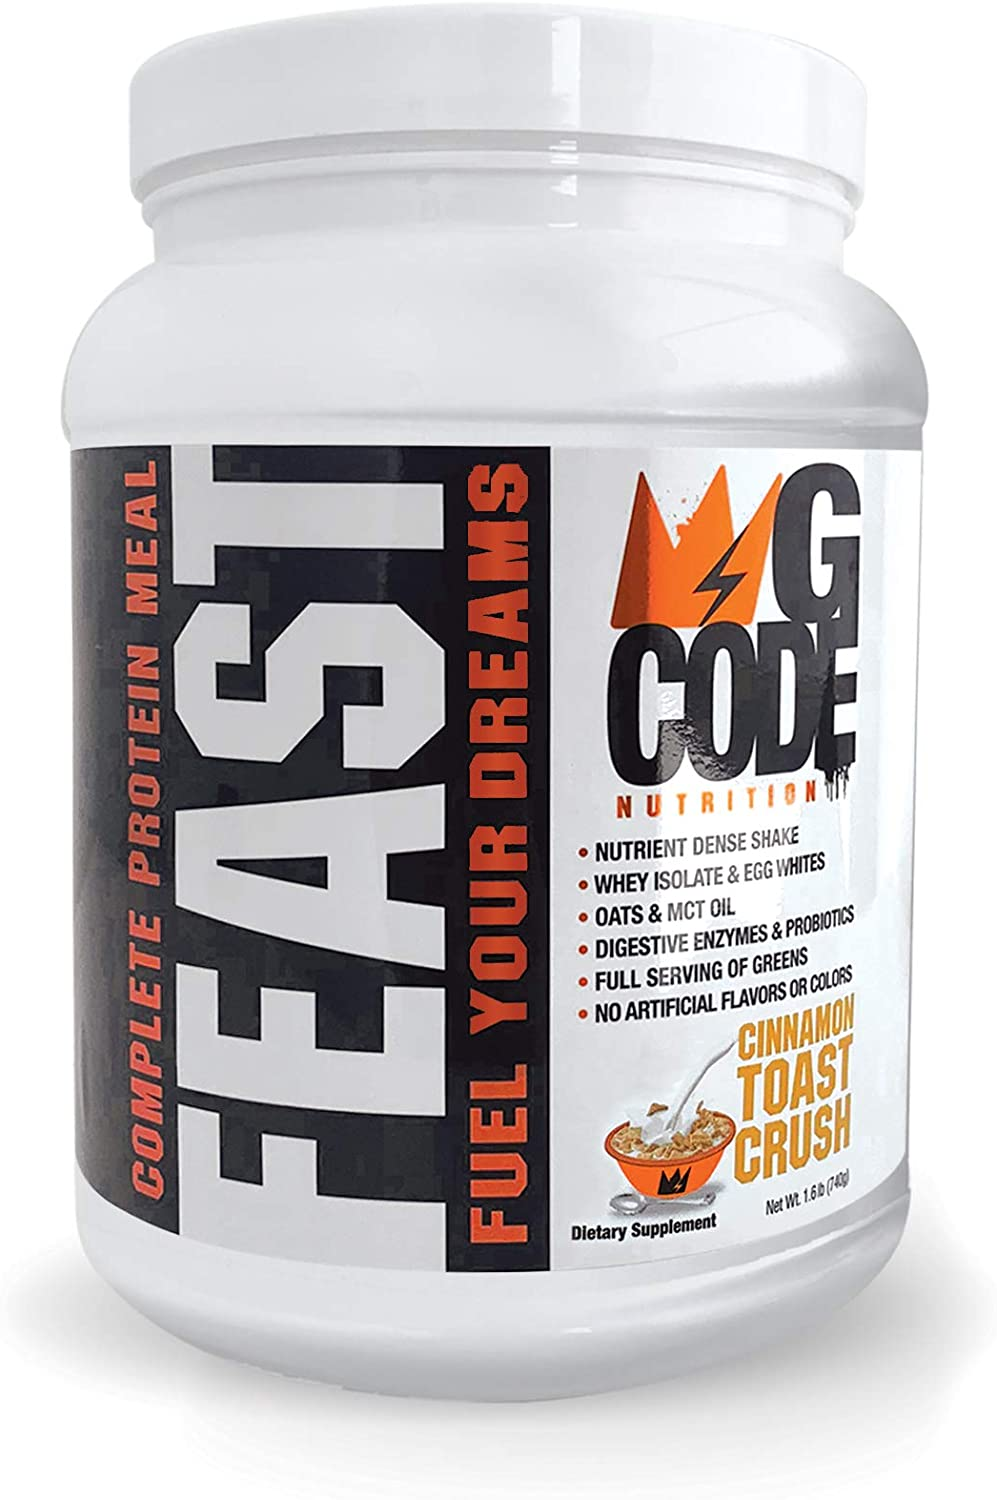 GCode Feast Complete Protein Meal Cinnamon Toast Crush Whey Isolate, Egg Whites, Oats, Organic Greens, MCT Oil, Probiotics, Digestive Enzymes